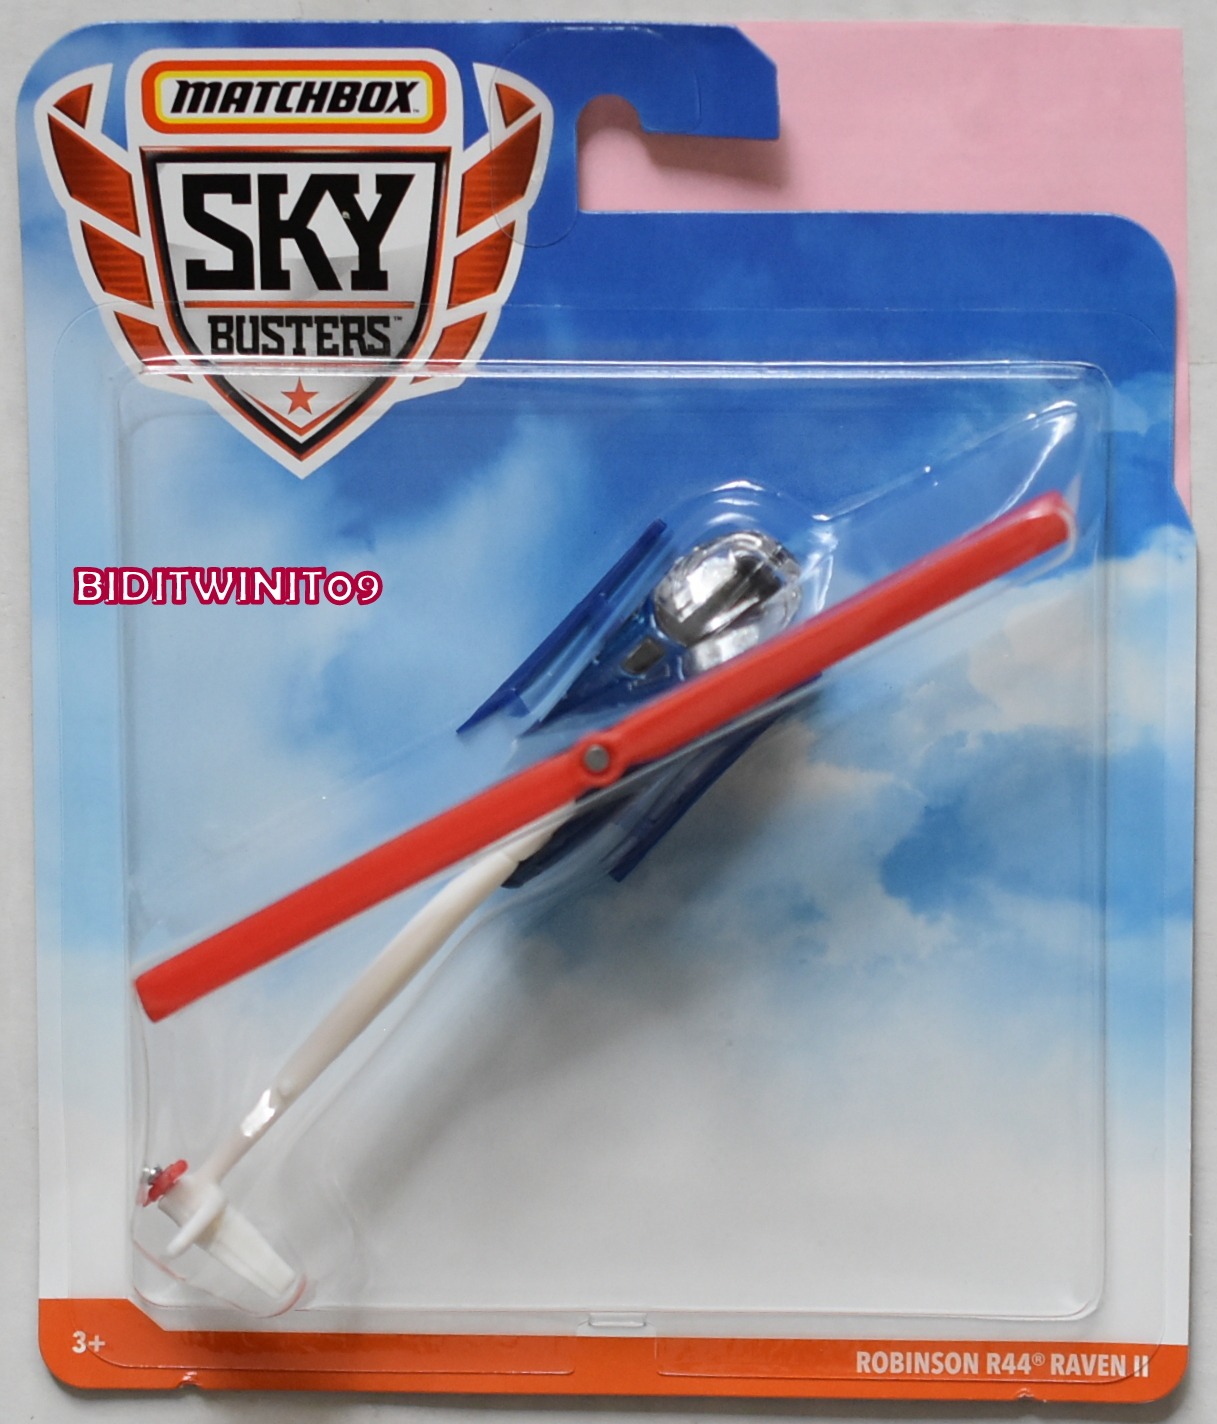 MATCHBOX SKY BUSTERS ROBINSON R44 RAVEN II